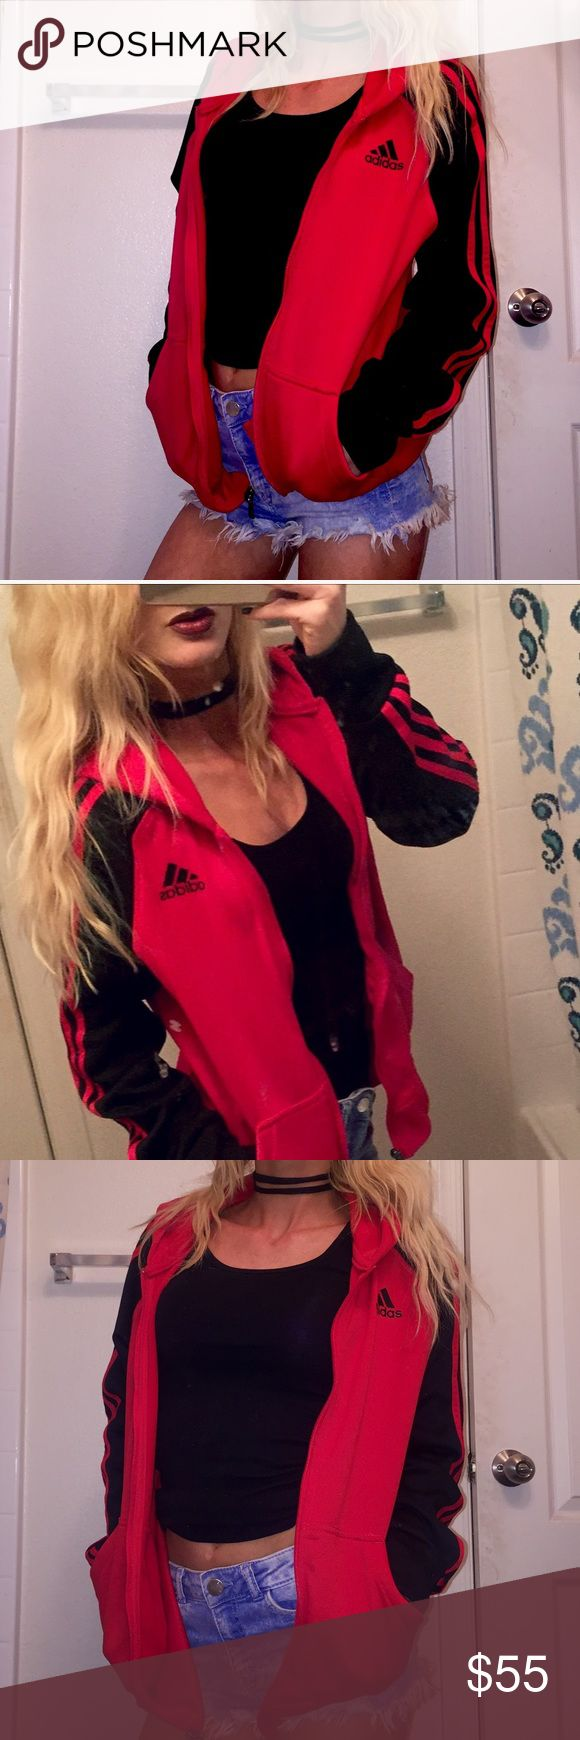 Adidas Red Superstar Track Jacket  Adidas Athletic Track Jacket  Purchased from pac sun - vintage 90's style Red with black sleeves and red racing stripes  Full zip up - front hand pockets  Perfect condition.  Size Medium  Super Cute!! adidas Tops Sweatshirts & Hoodies